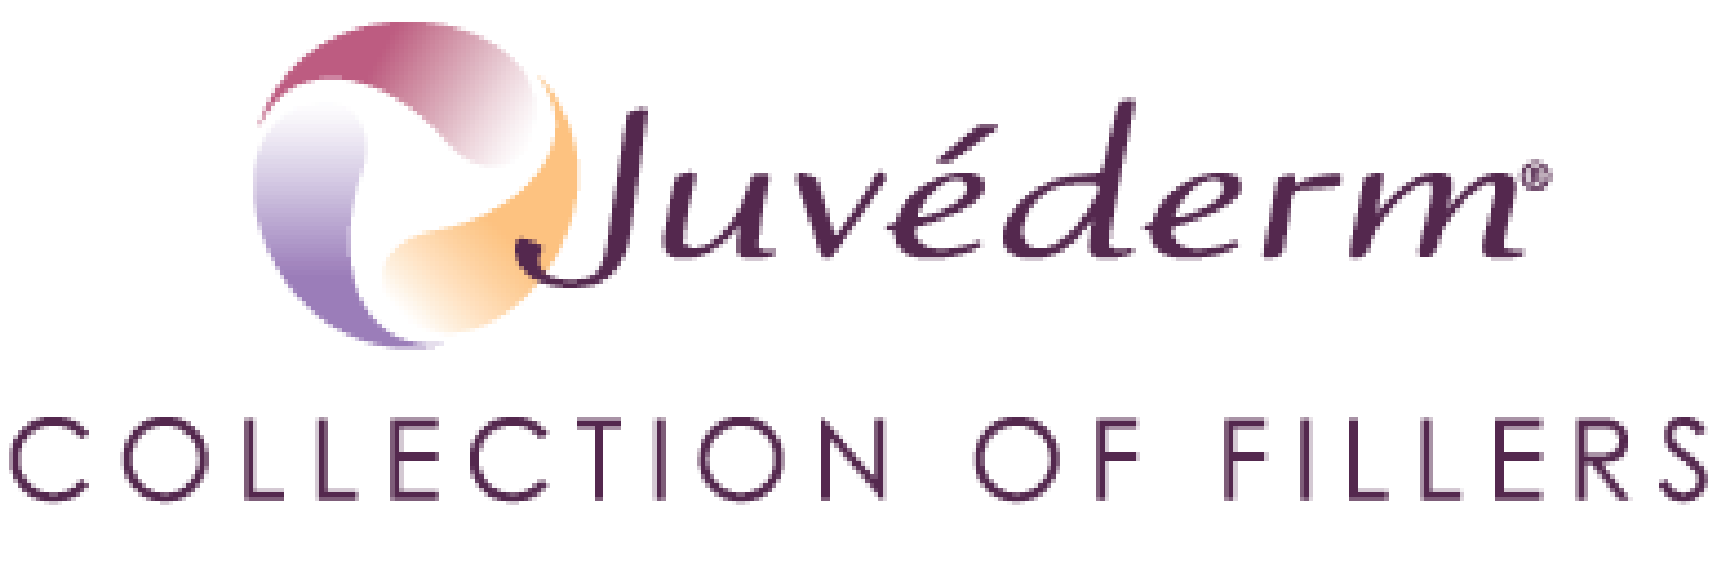 Juvéderm Collection of Fillers logo